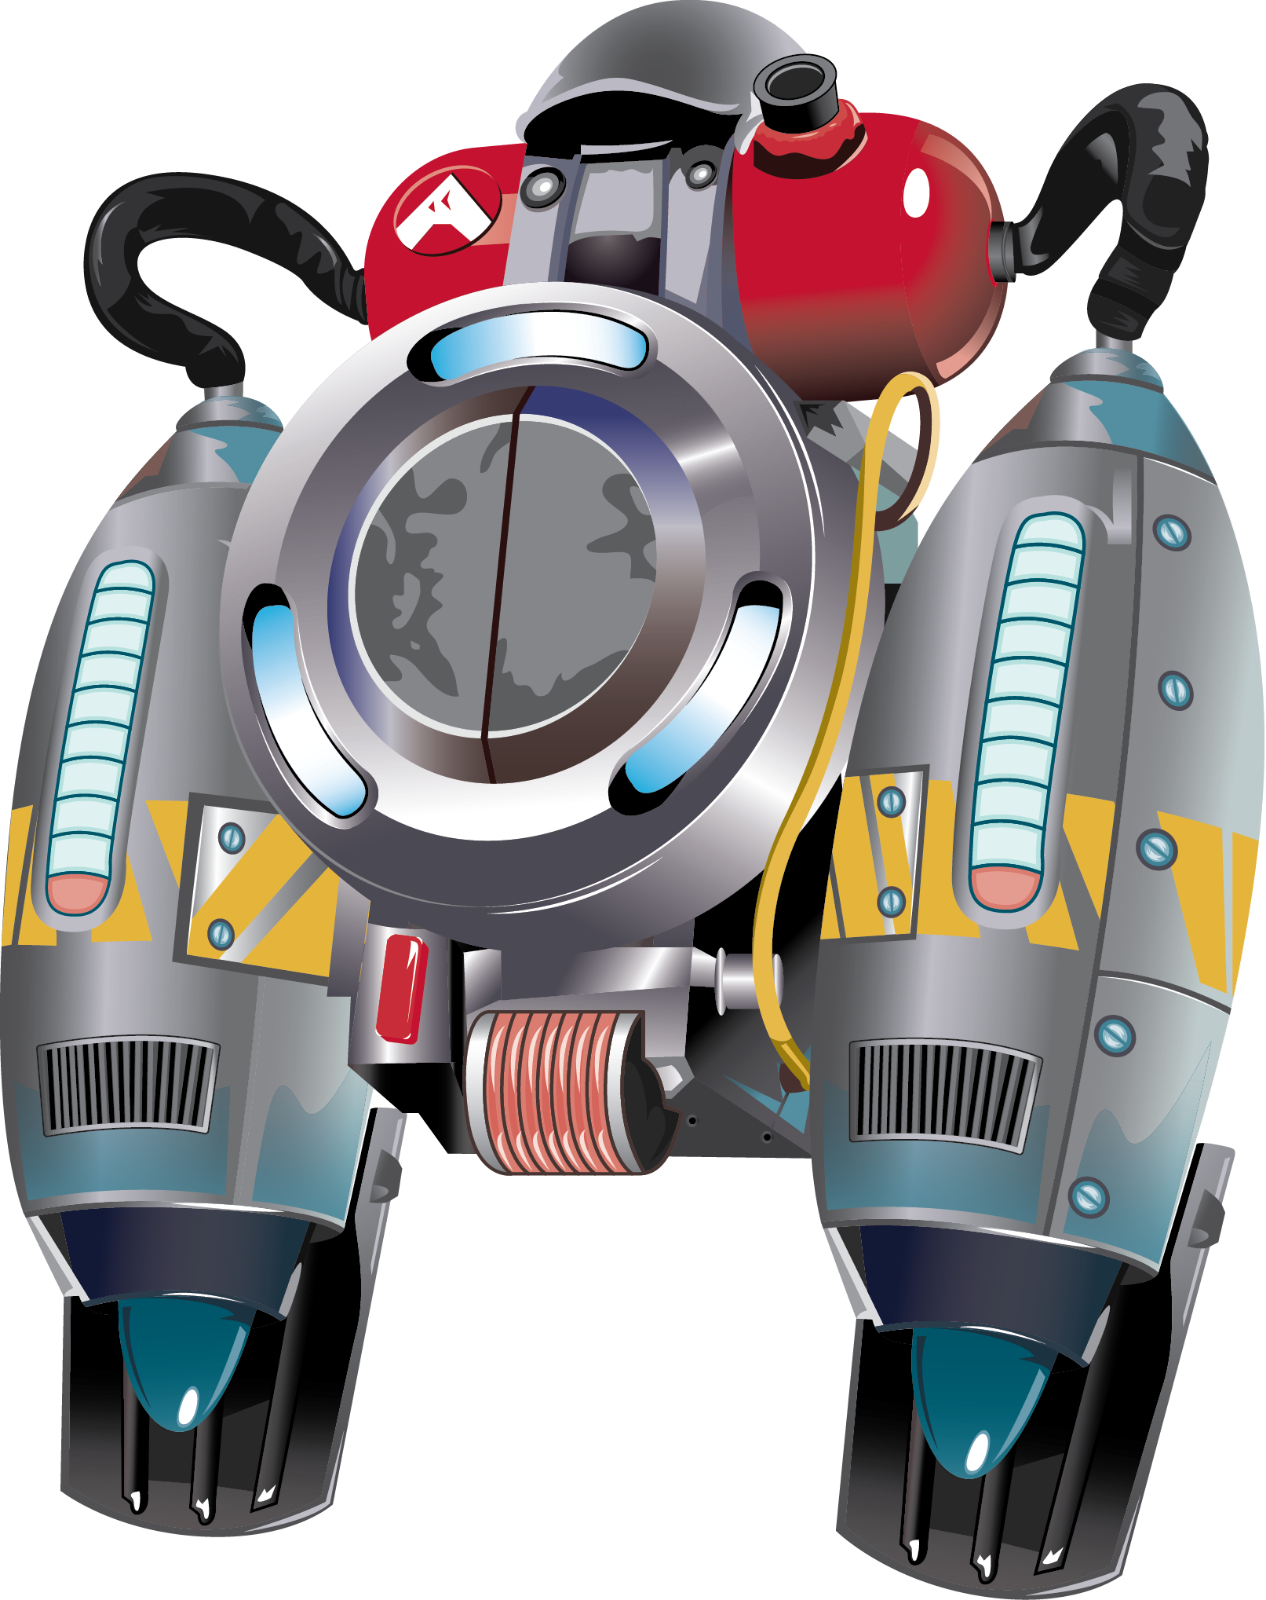 Fortnite Battle Royal Jetpack Sticker 5 Sizes Battle Royal Fortnite Battle Jetpack location for the new fortnite jetpack that just got added and how to find the new jetpack also known as fortnite's stark industries jetpack! fortnite battle royal jetpack sticker 5